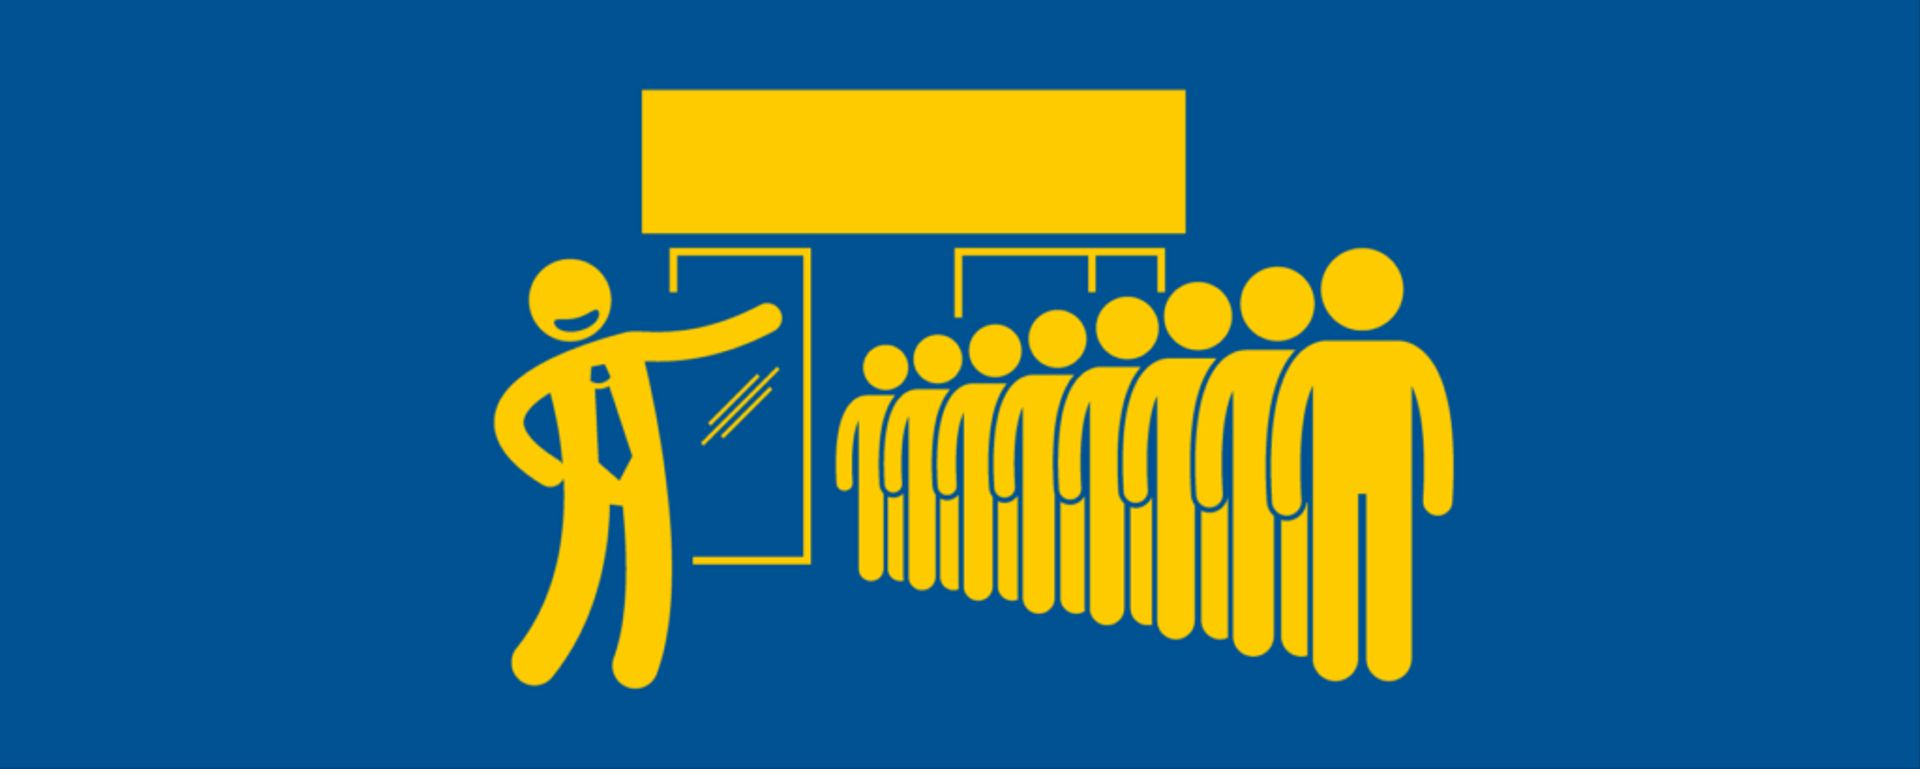 Picture showing an illustration of people queuing